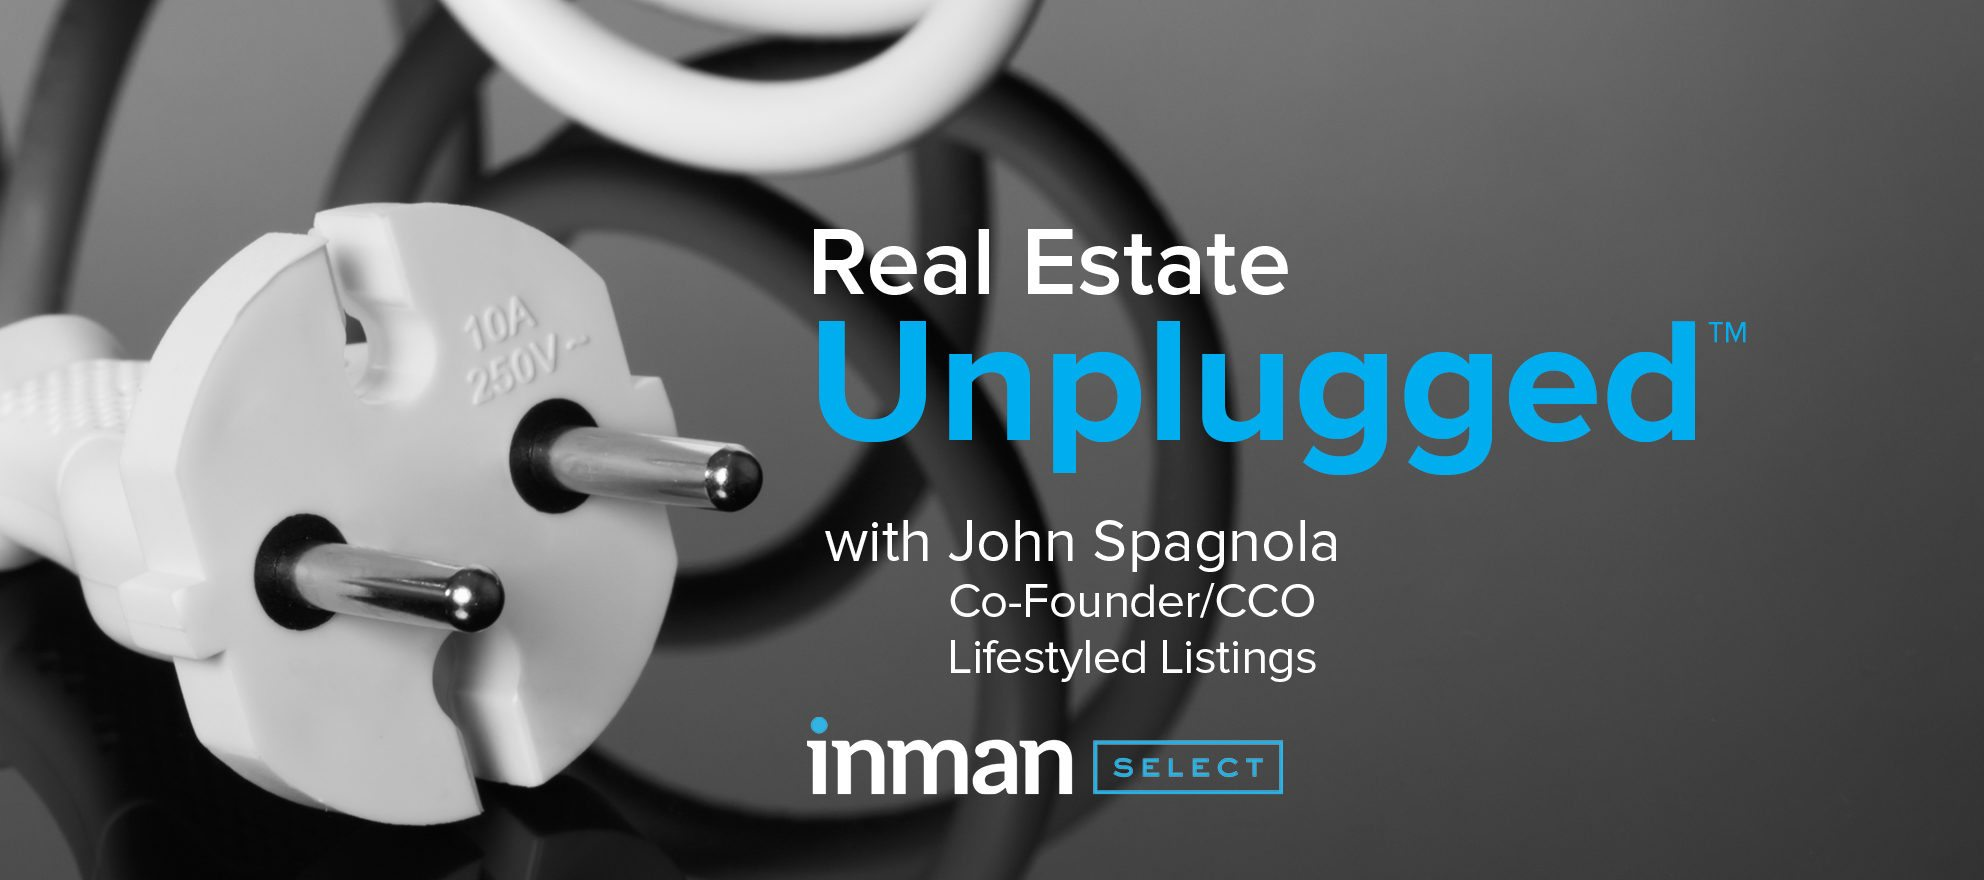 John Spagnola talks relevance, customer service and culture